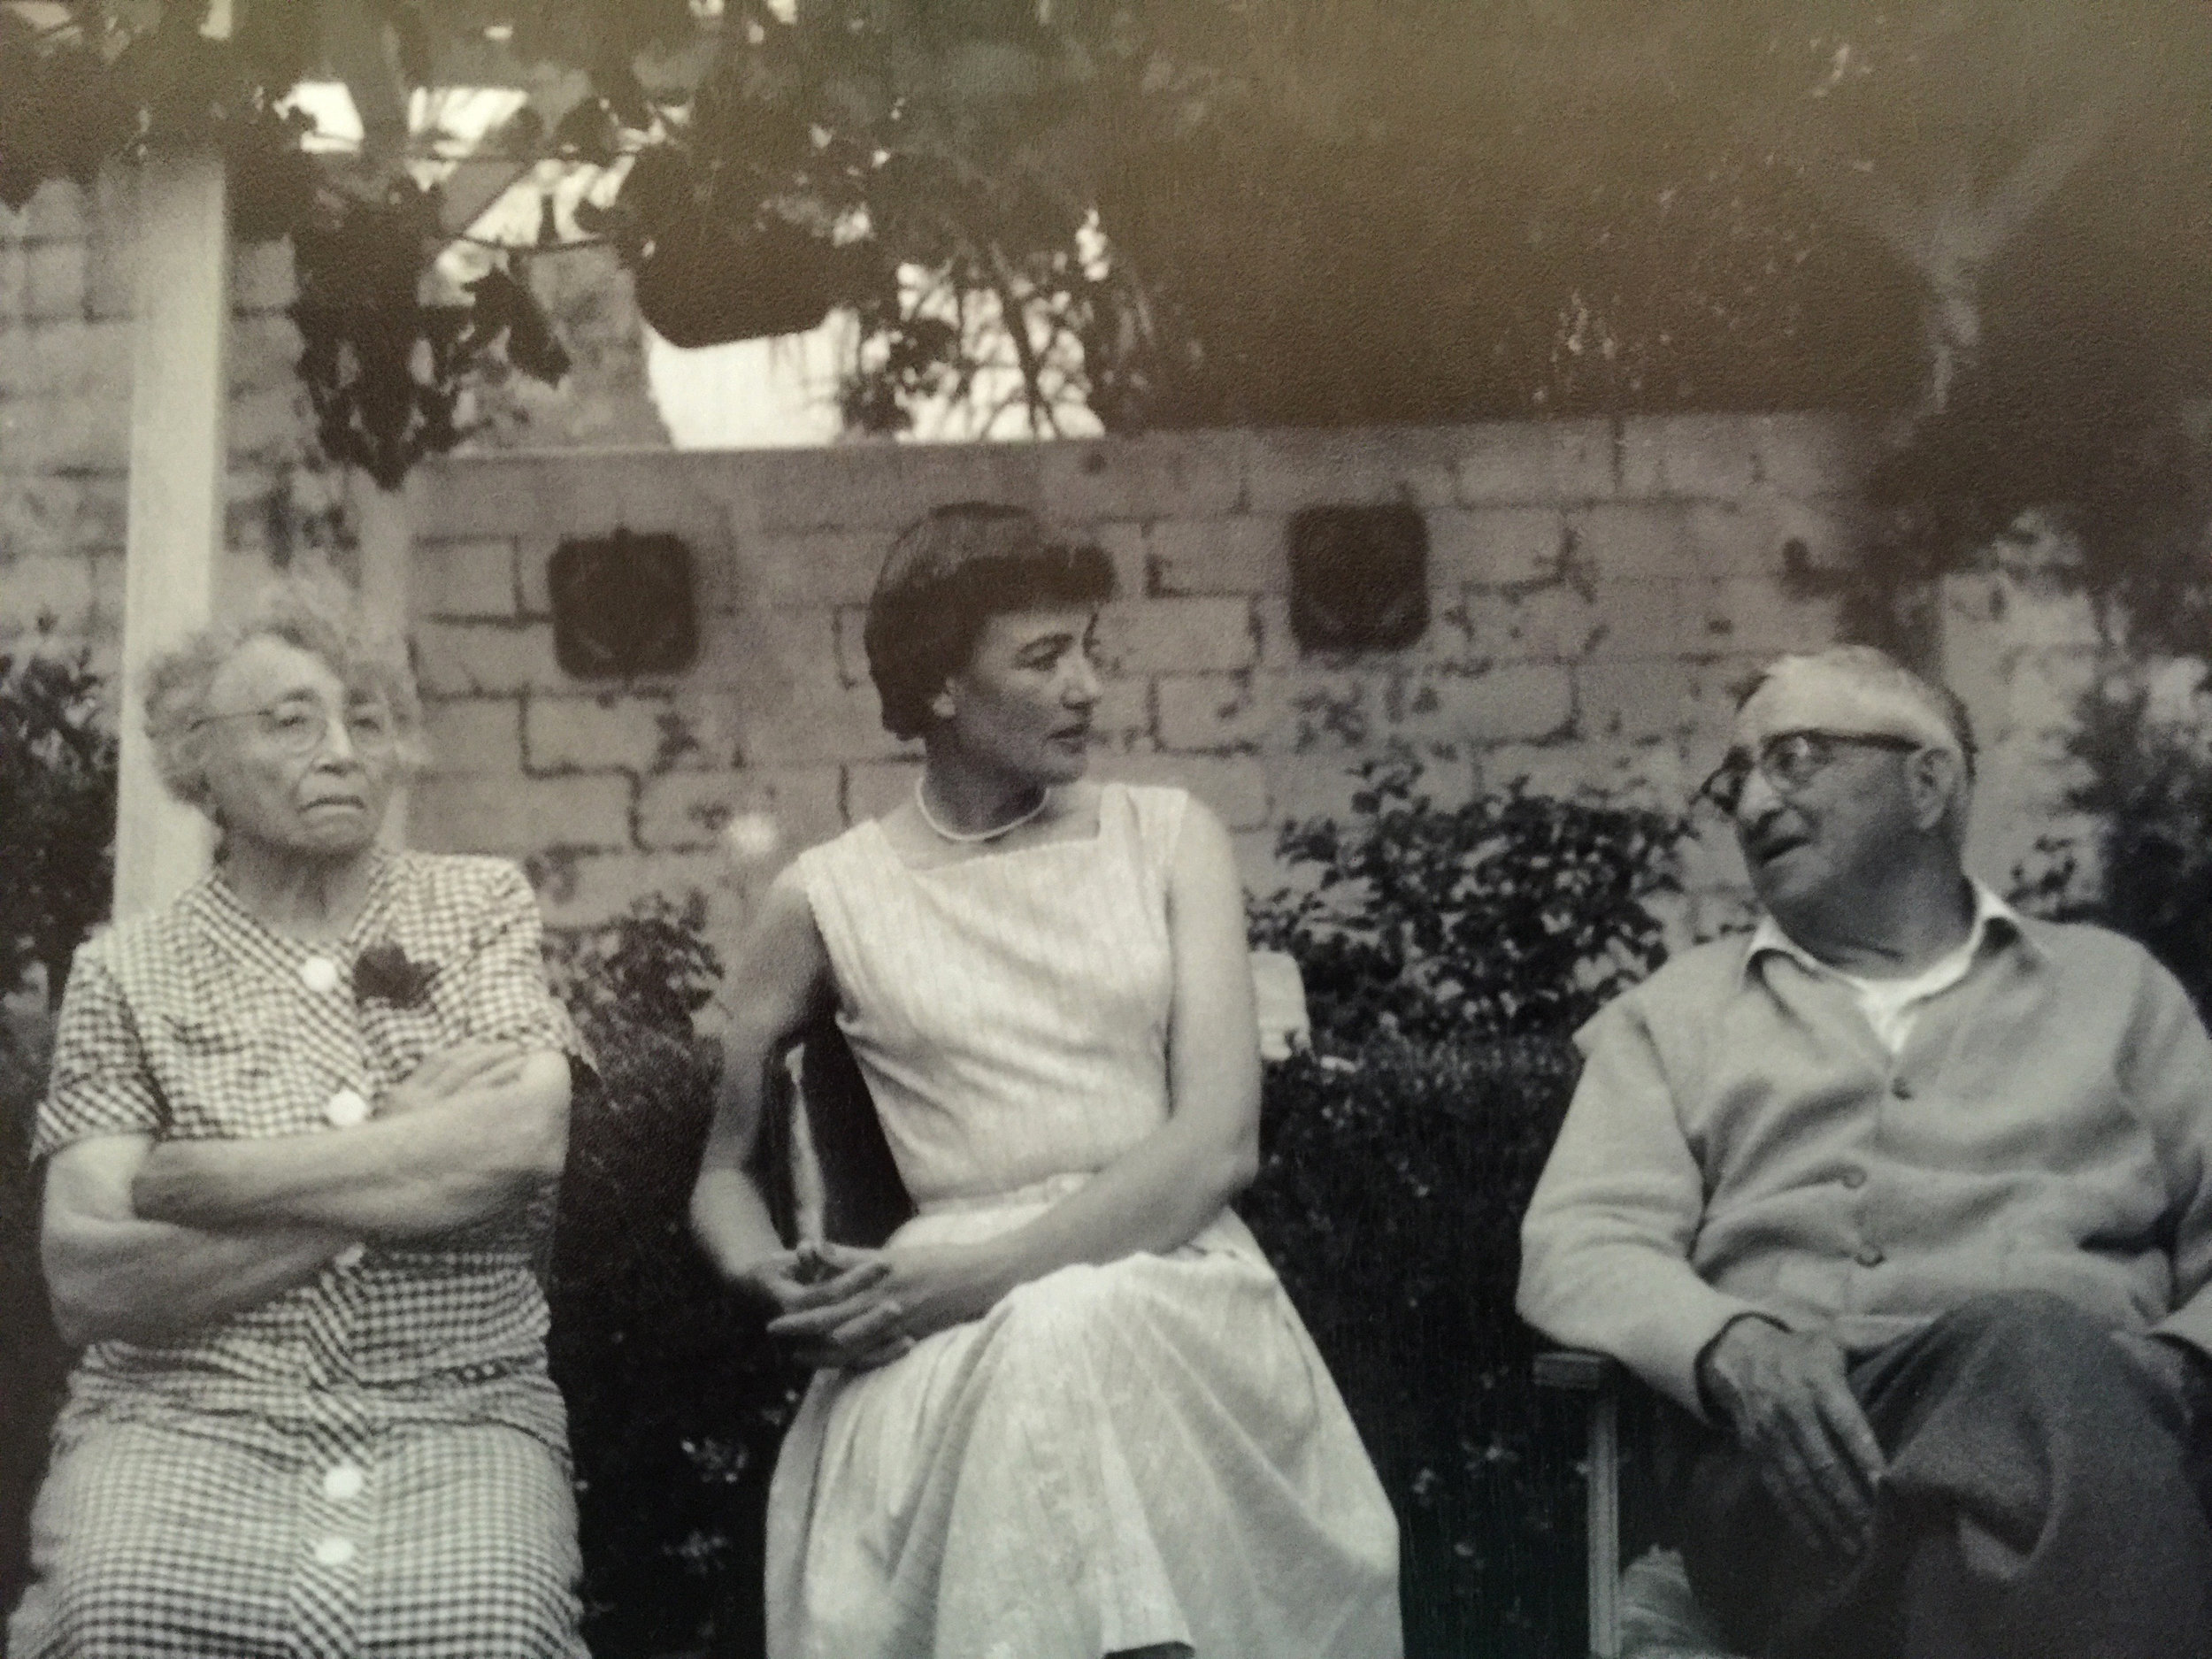 With Vincent & Mary, late 50s